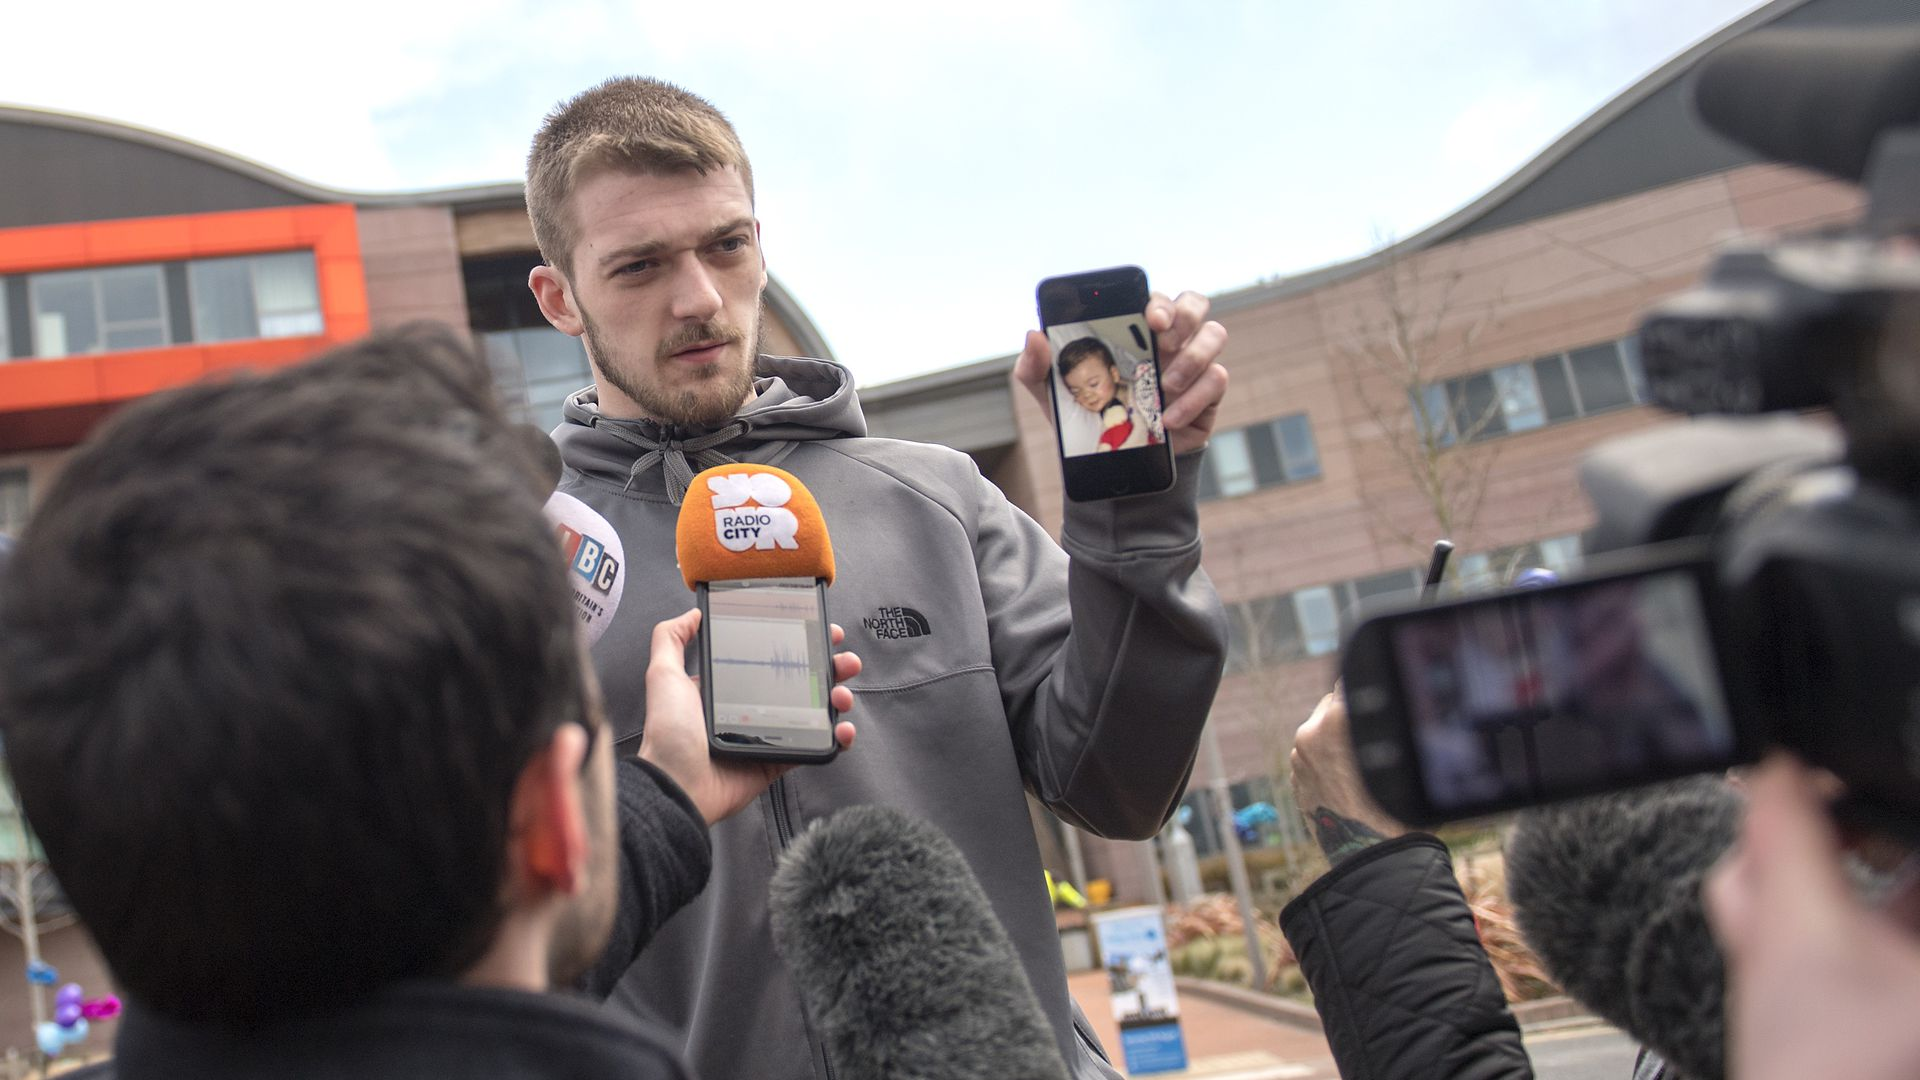 Tom Evans, Father of Alfie Evans, holds a photograph of his son as he speaks to media outside Alder Hey Children's Hospital.